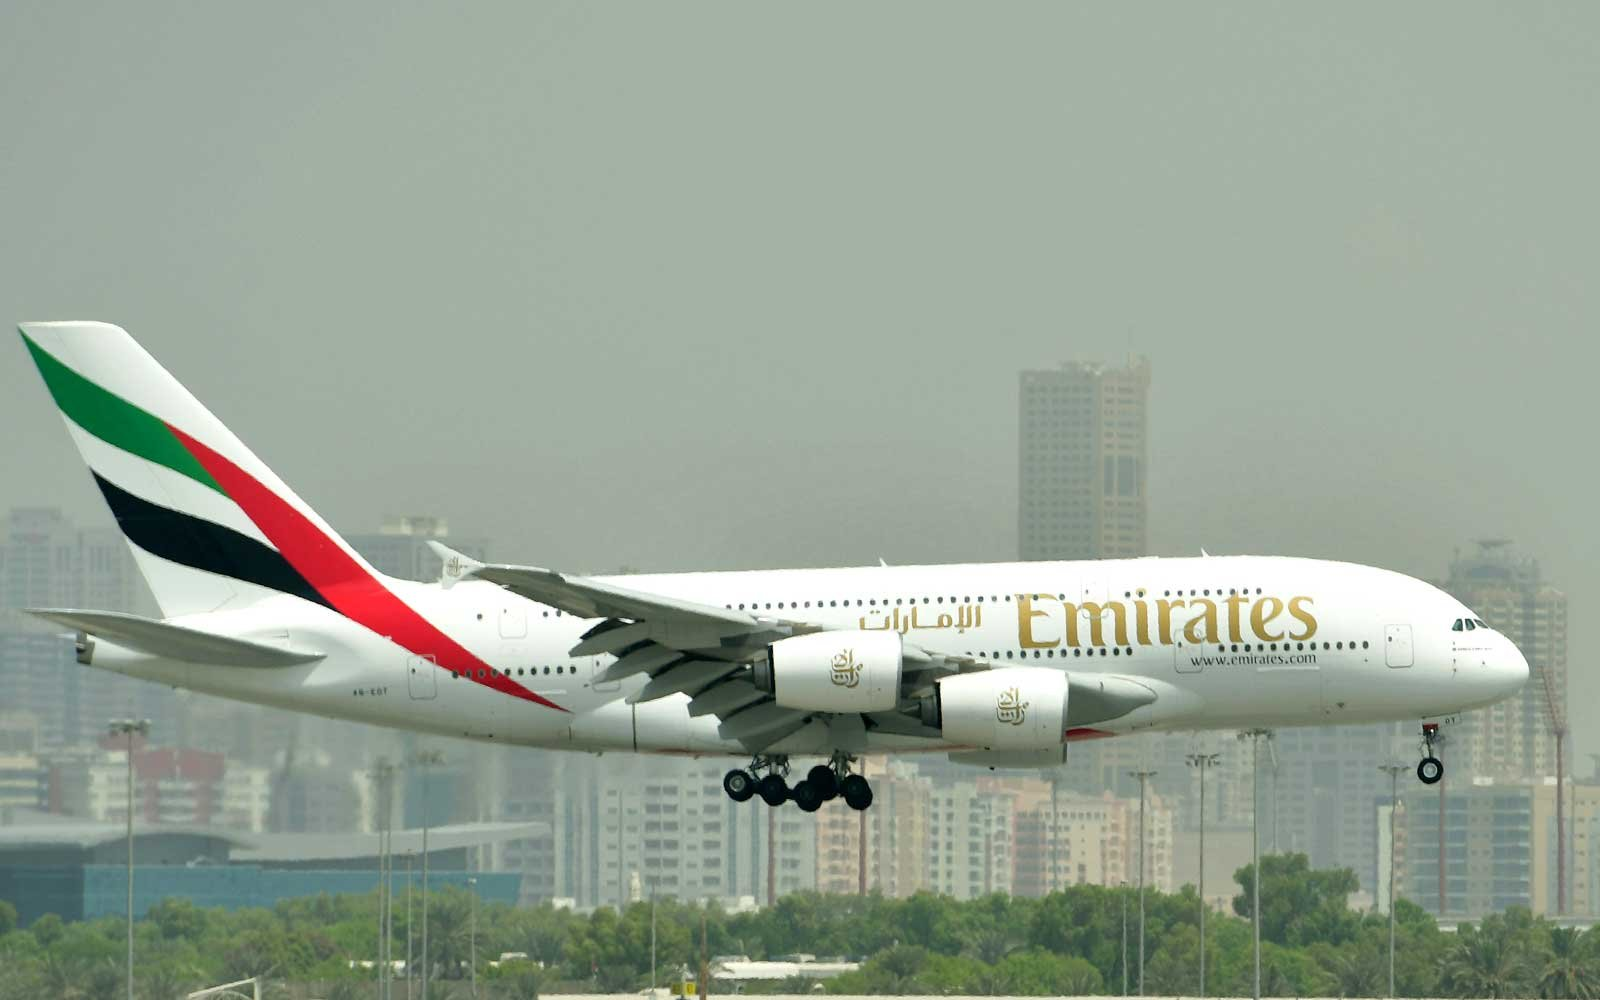 Emirates Purchase Pulls Airbus A380 Back From the Brink